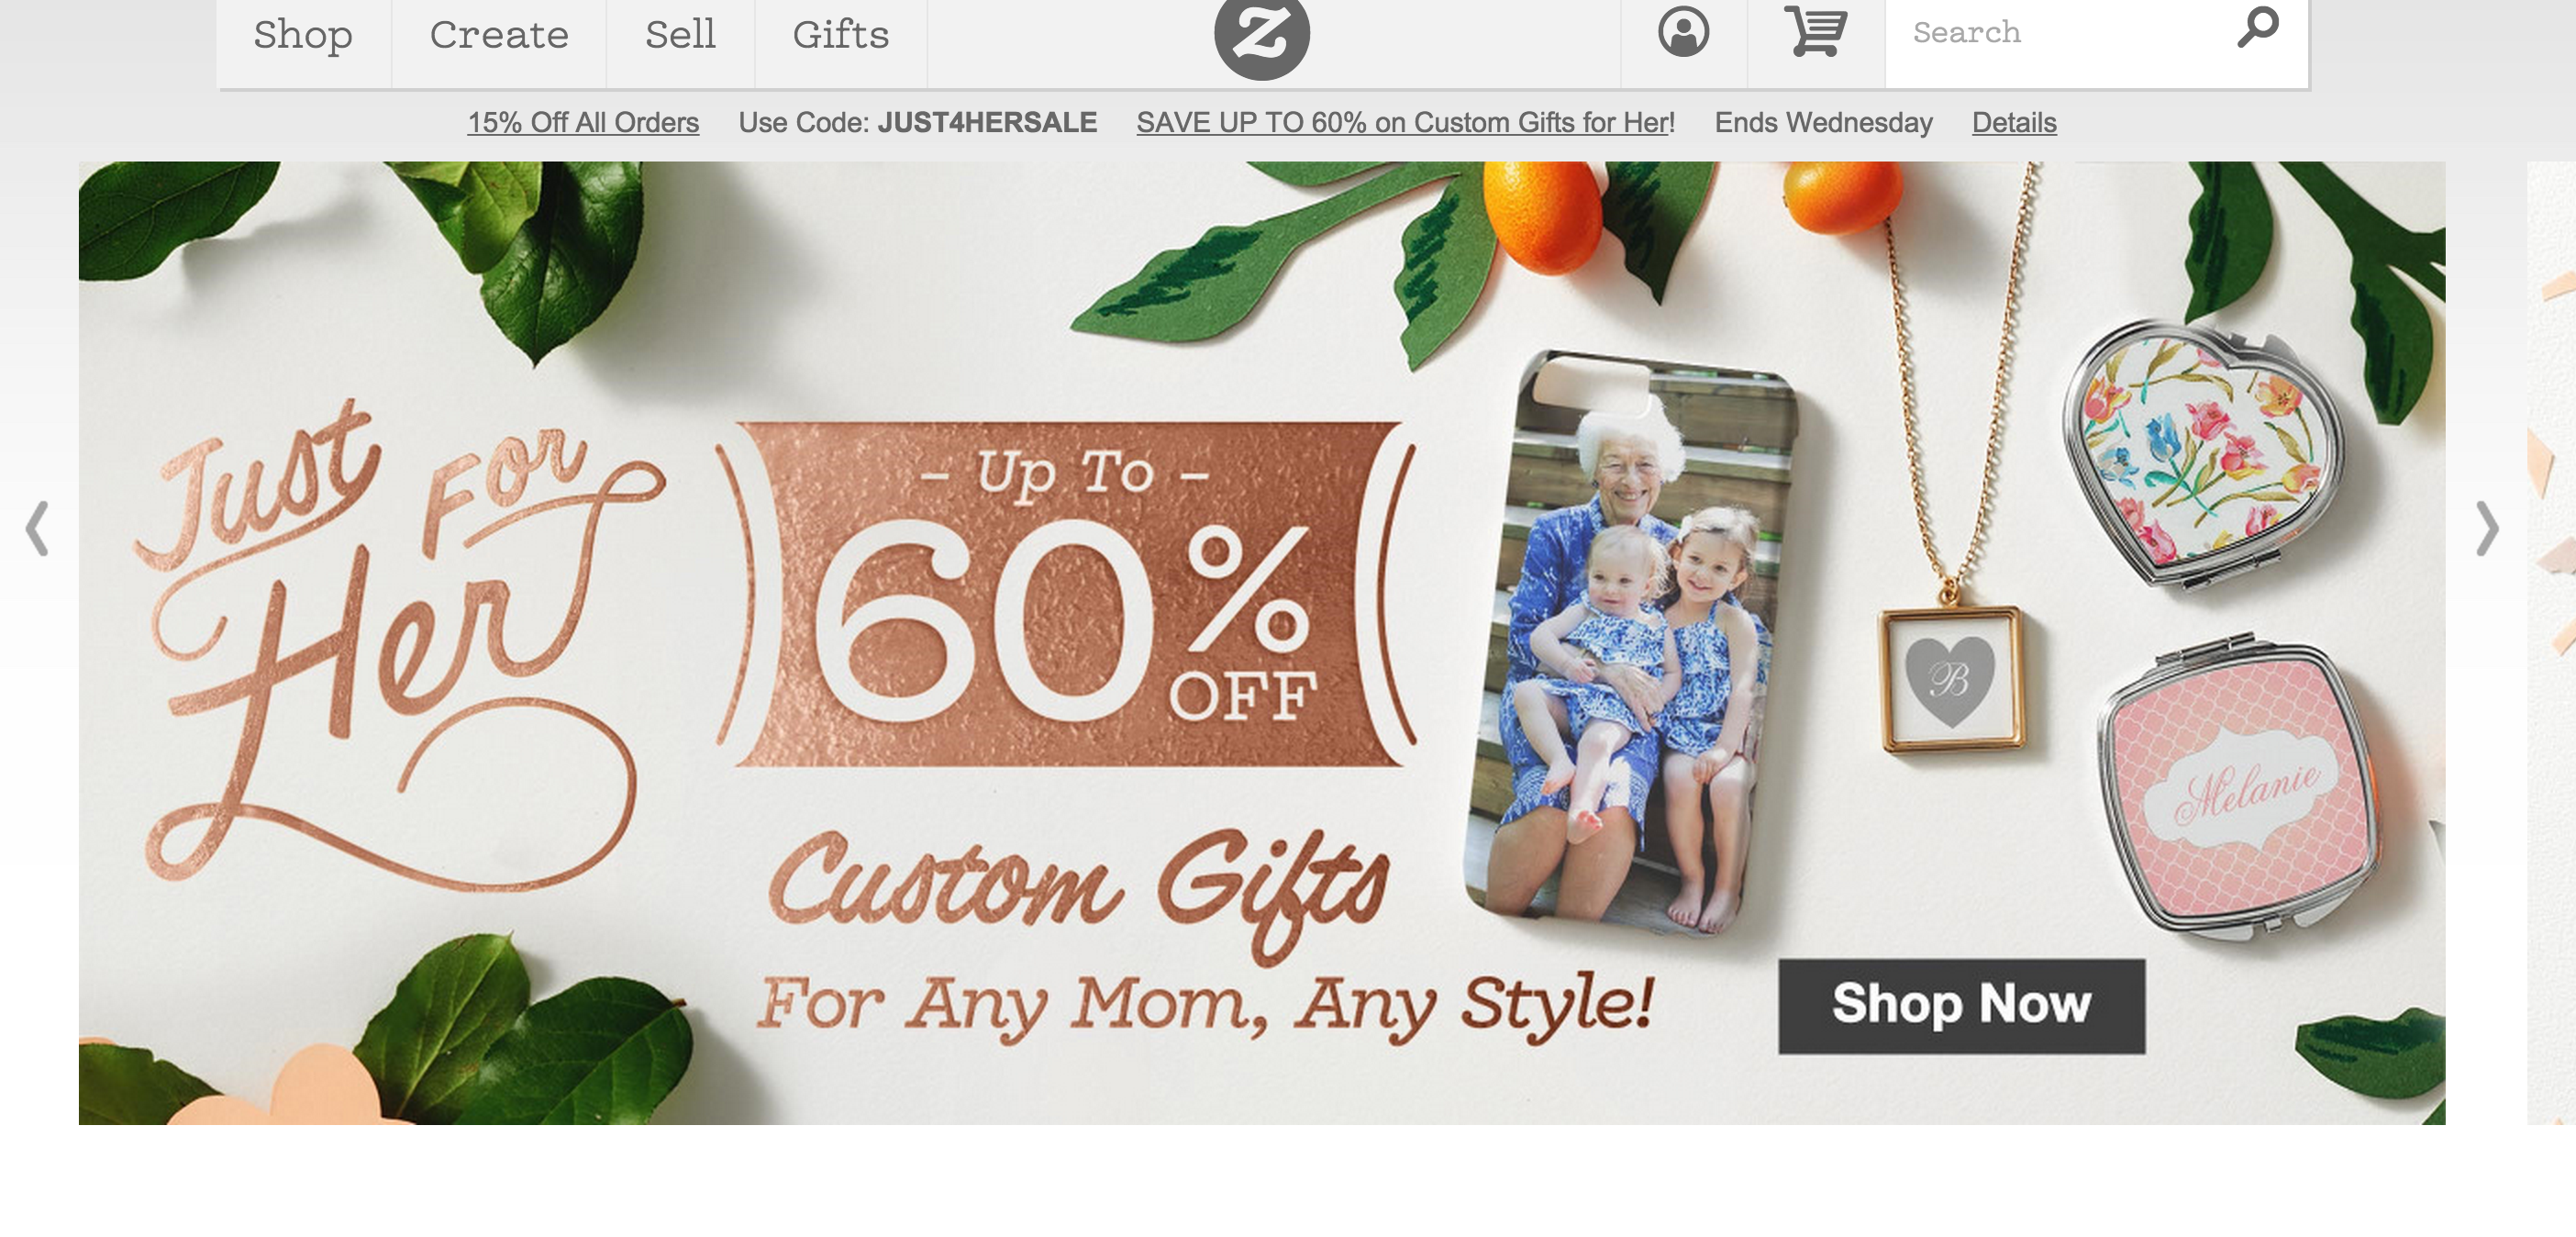 A brand has offered up to 60% discount on products bought as gifts for moms together with the designed image displayed on the slideshow on the homepage